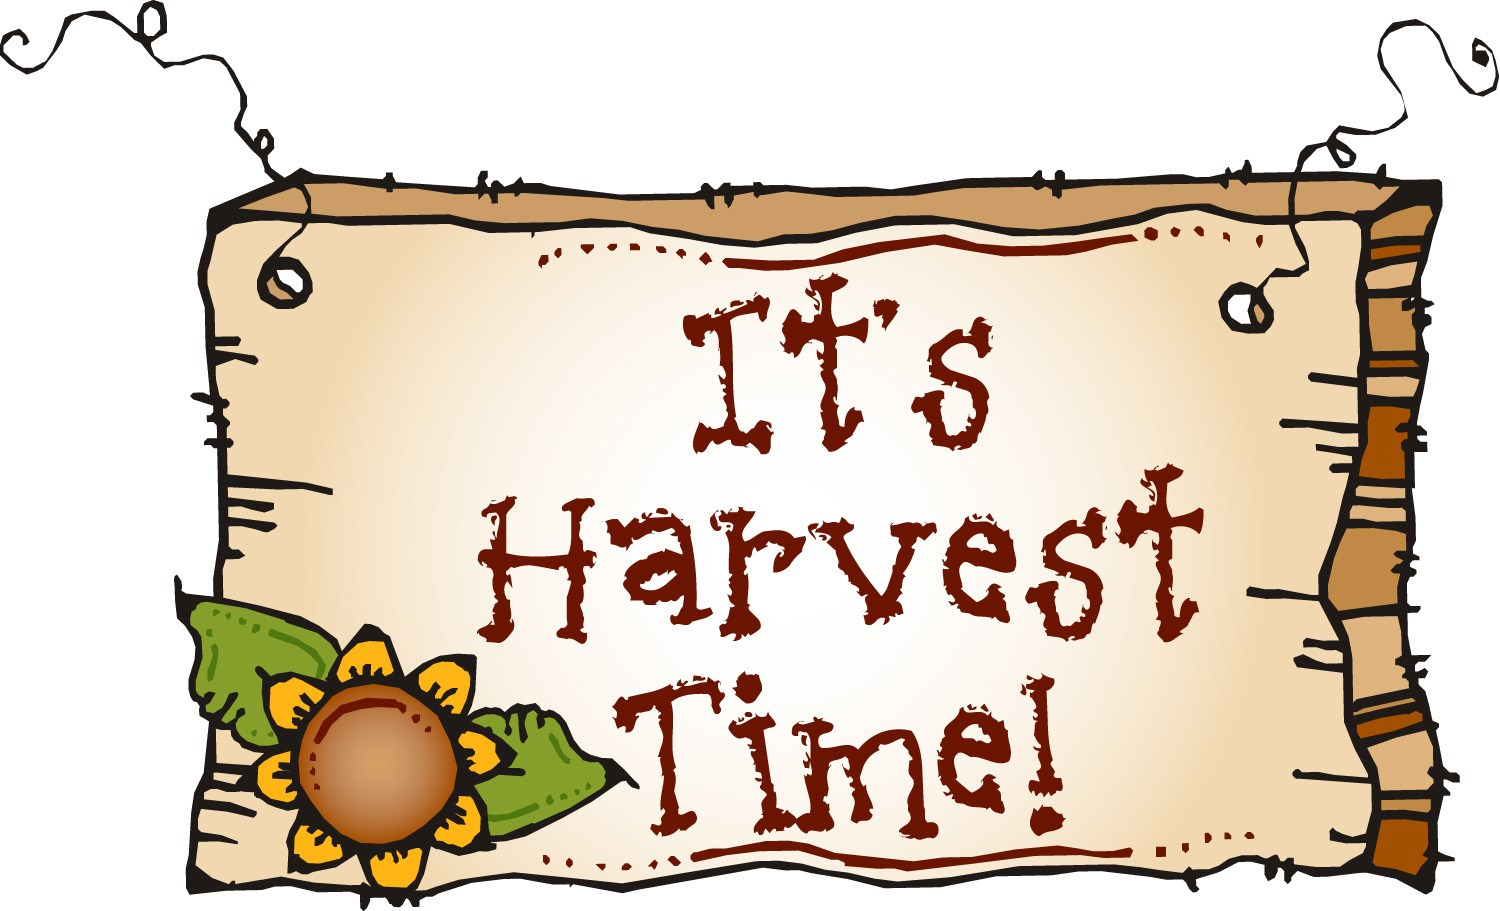 Happy harvest clipart 7 » Clipart Portal.